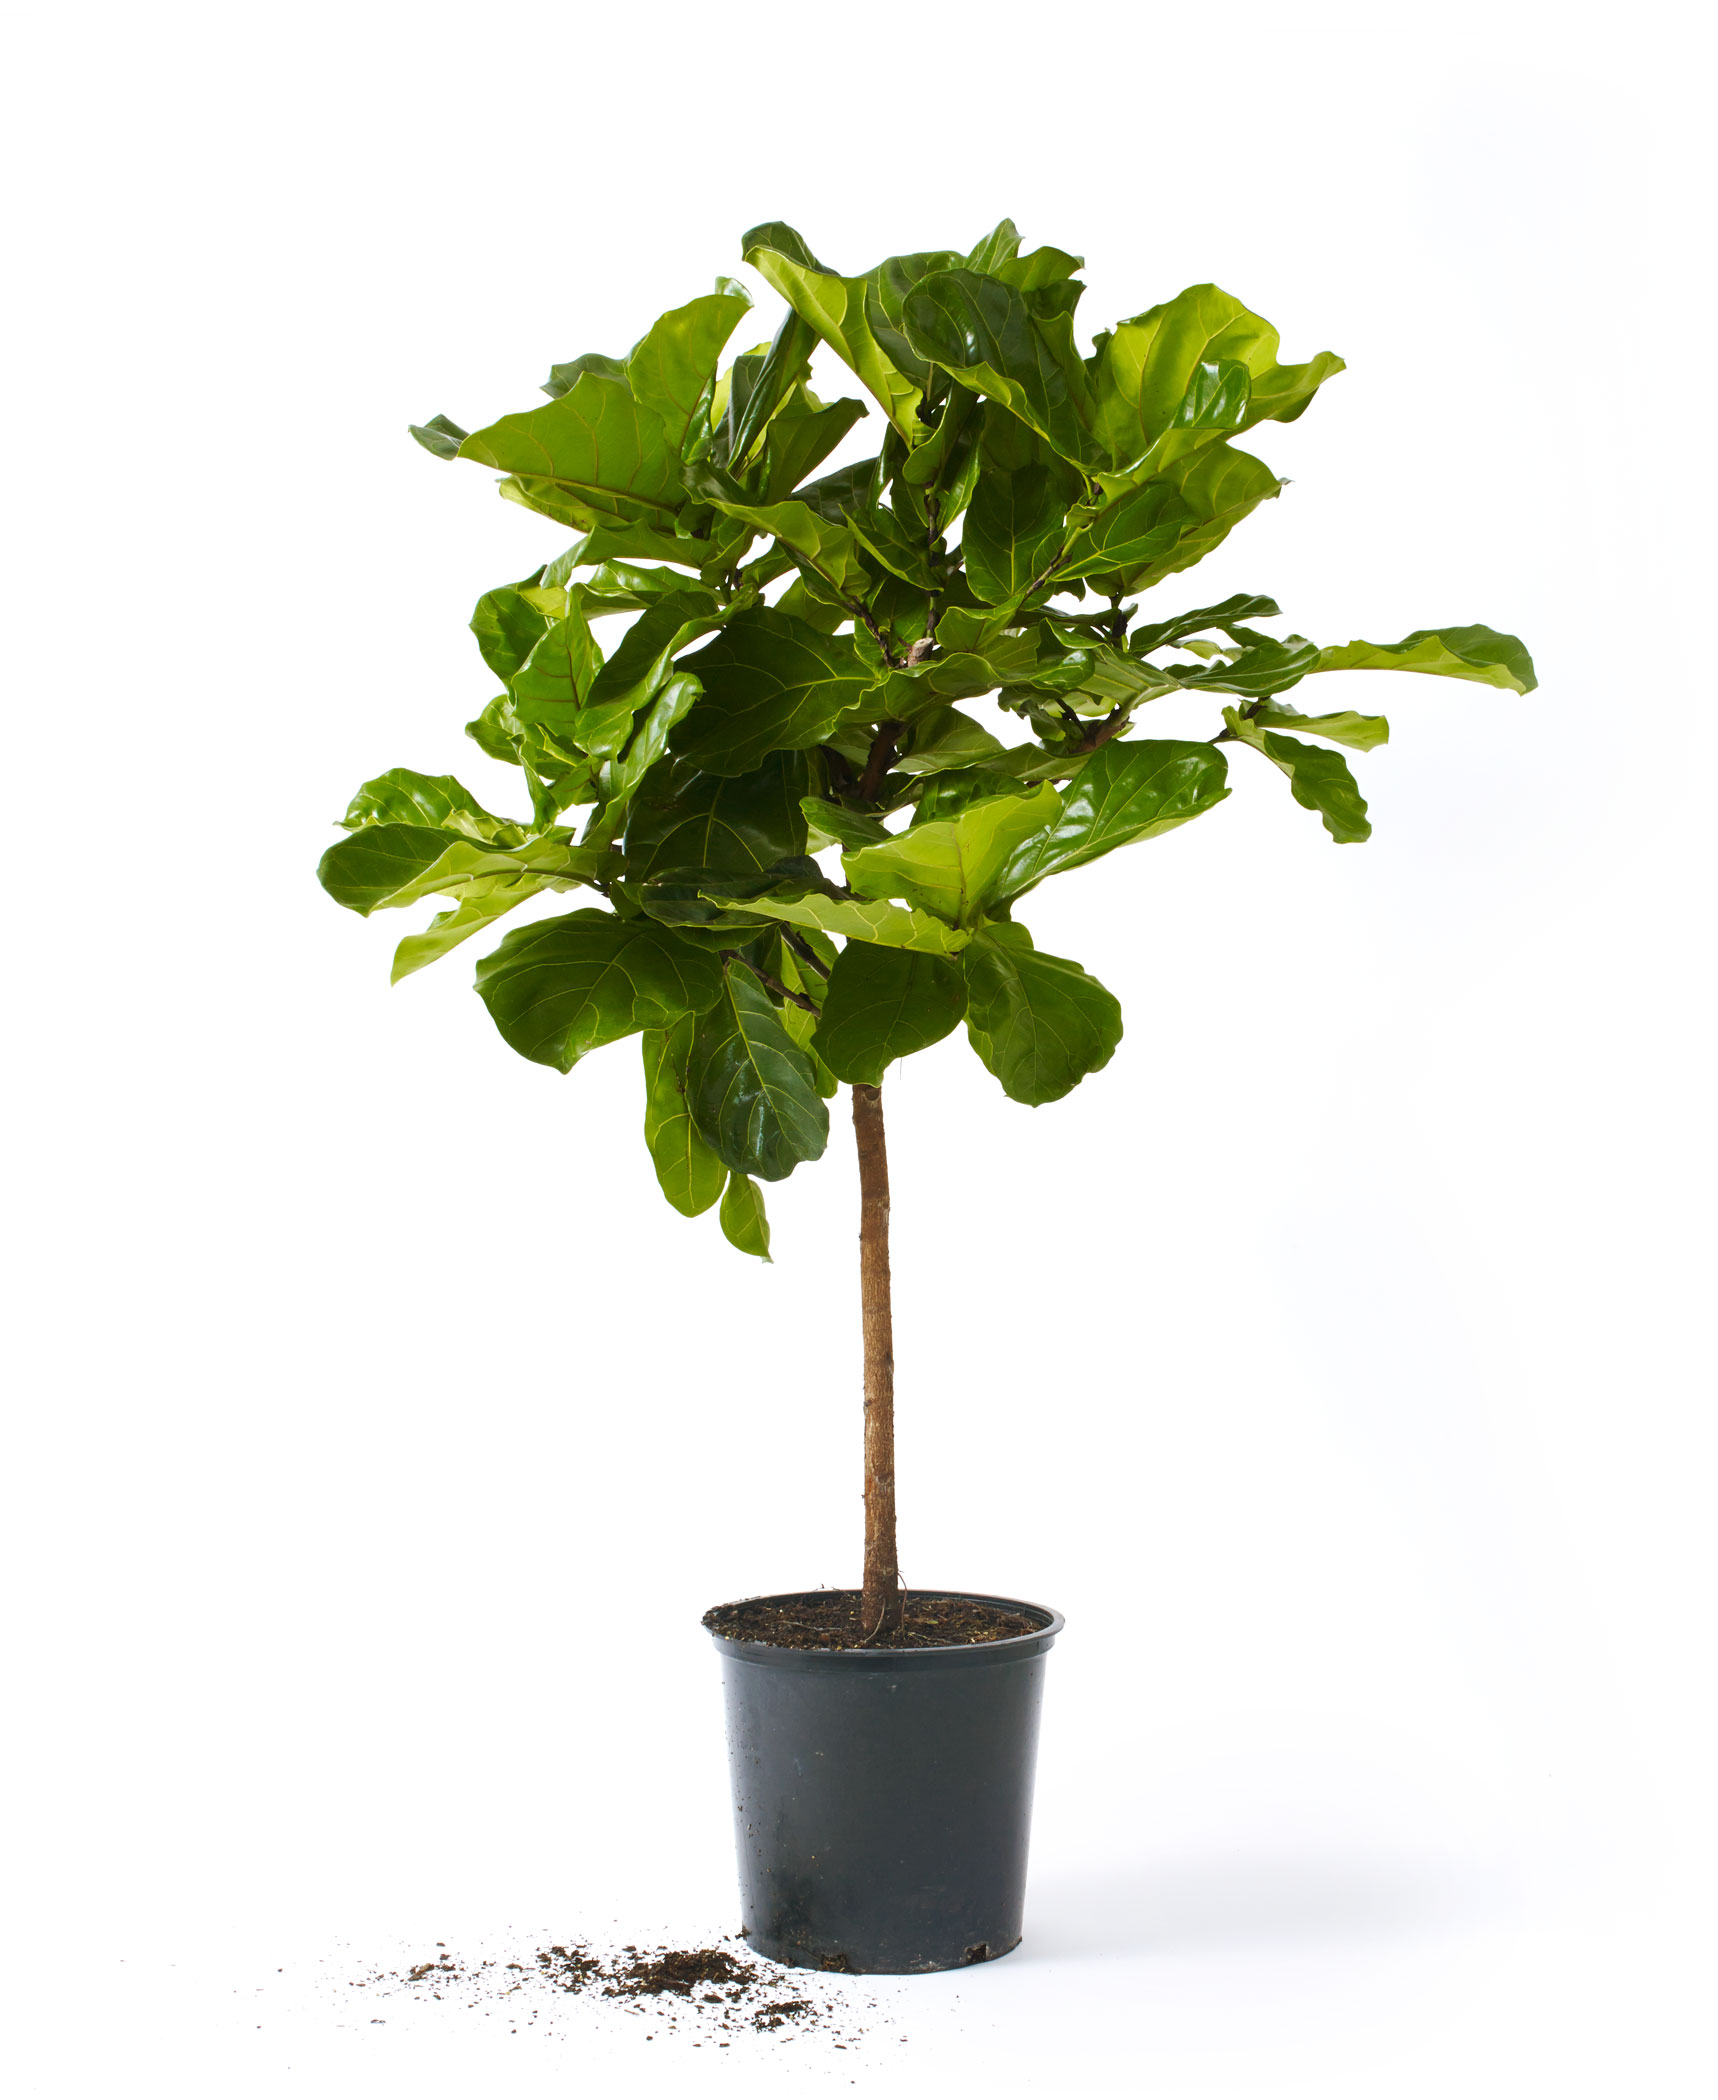 Why Houseplants Are Having a Revival - D Magazine on order birds of paradise plant, zamiifolia house plant, spider house plant, fig house plant, houseplants plant, croton house plant, banana house plant, cast iron plant, rubber house plant, hydrangea house plant, peperomia house plant, fern house plant, zi zi plant, arrowhead house plant, umbrella house plant, avocado house plant, eternity plant, house plant identification succulent plant,